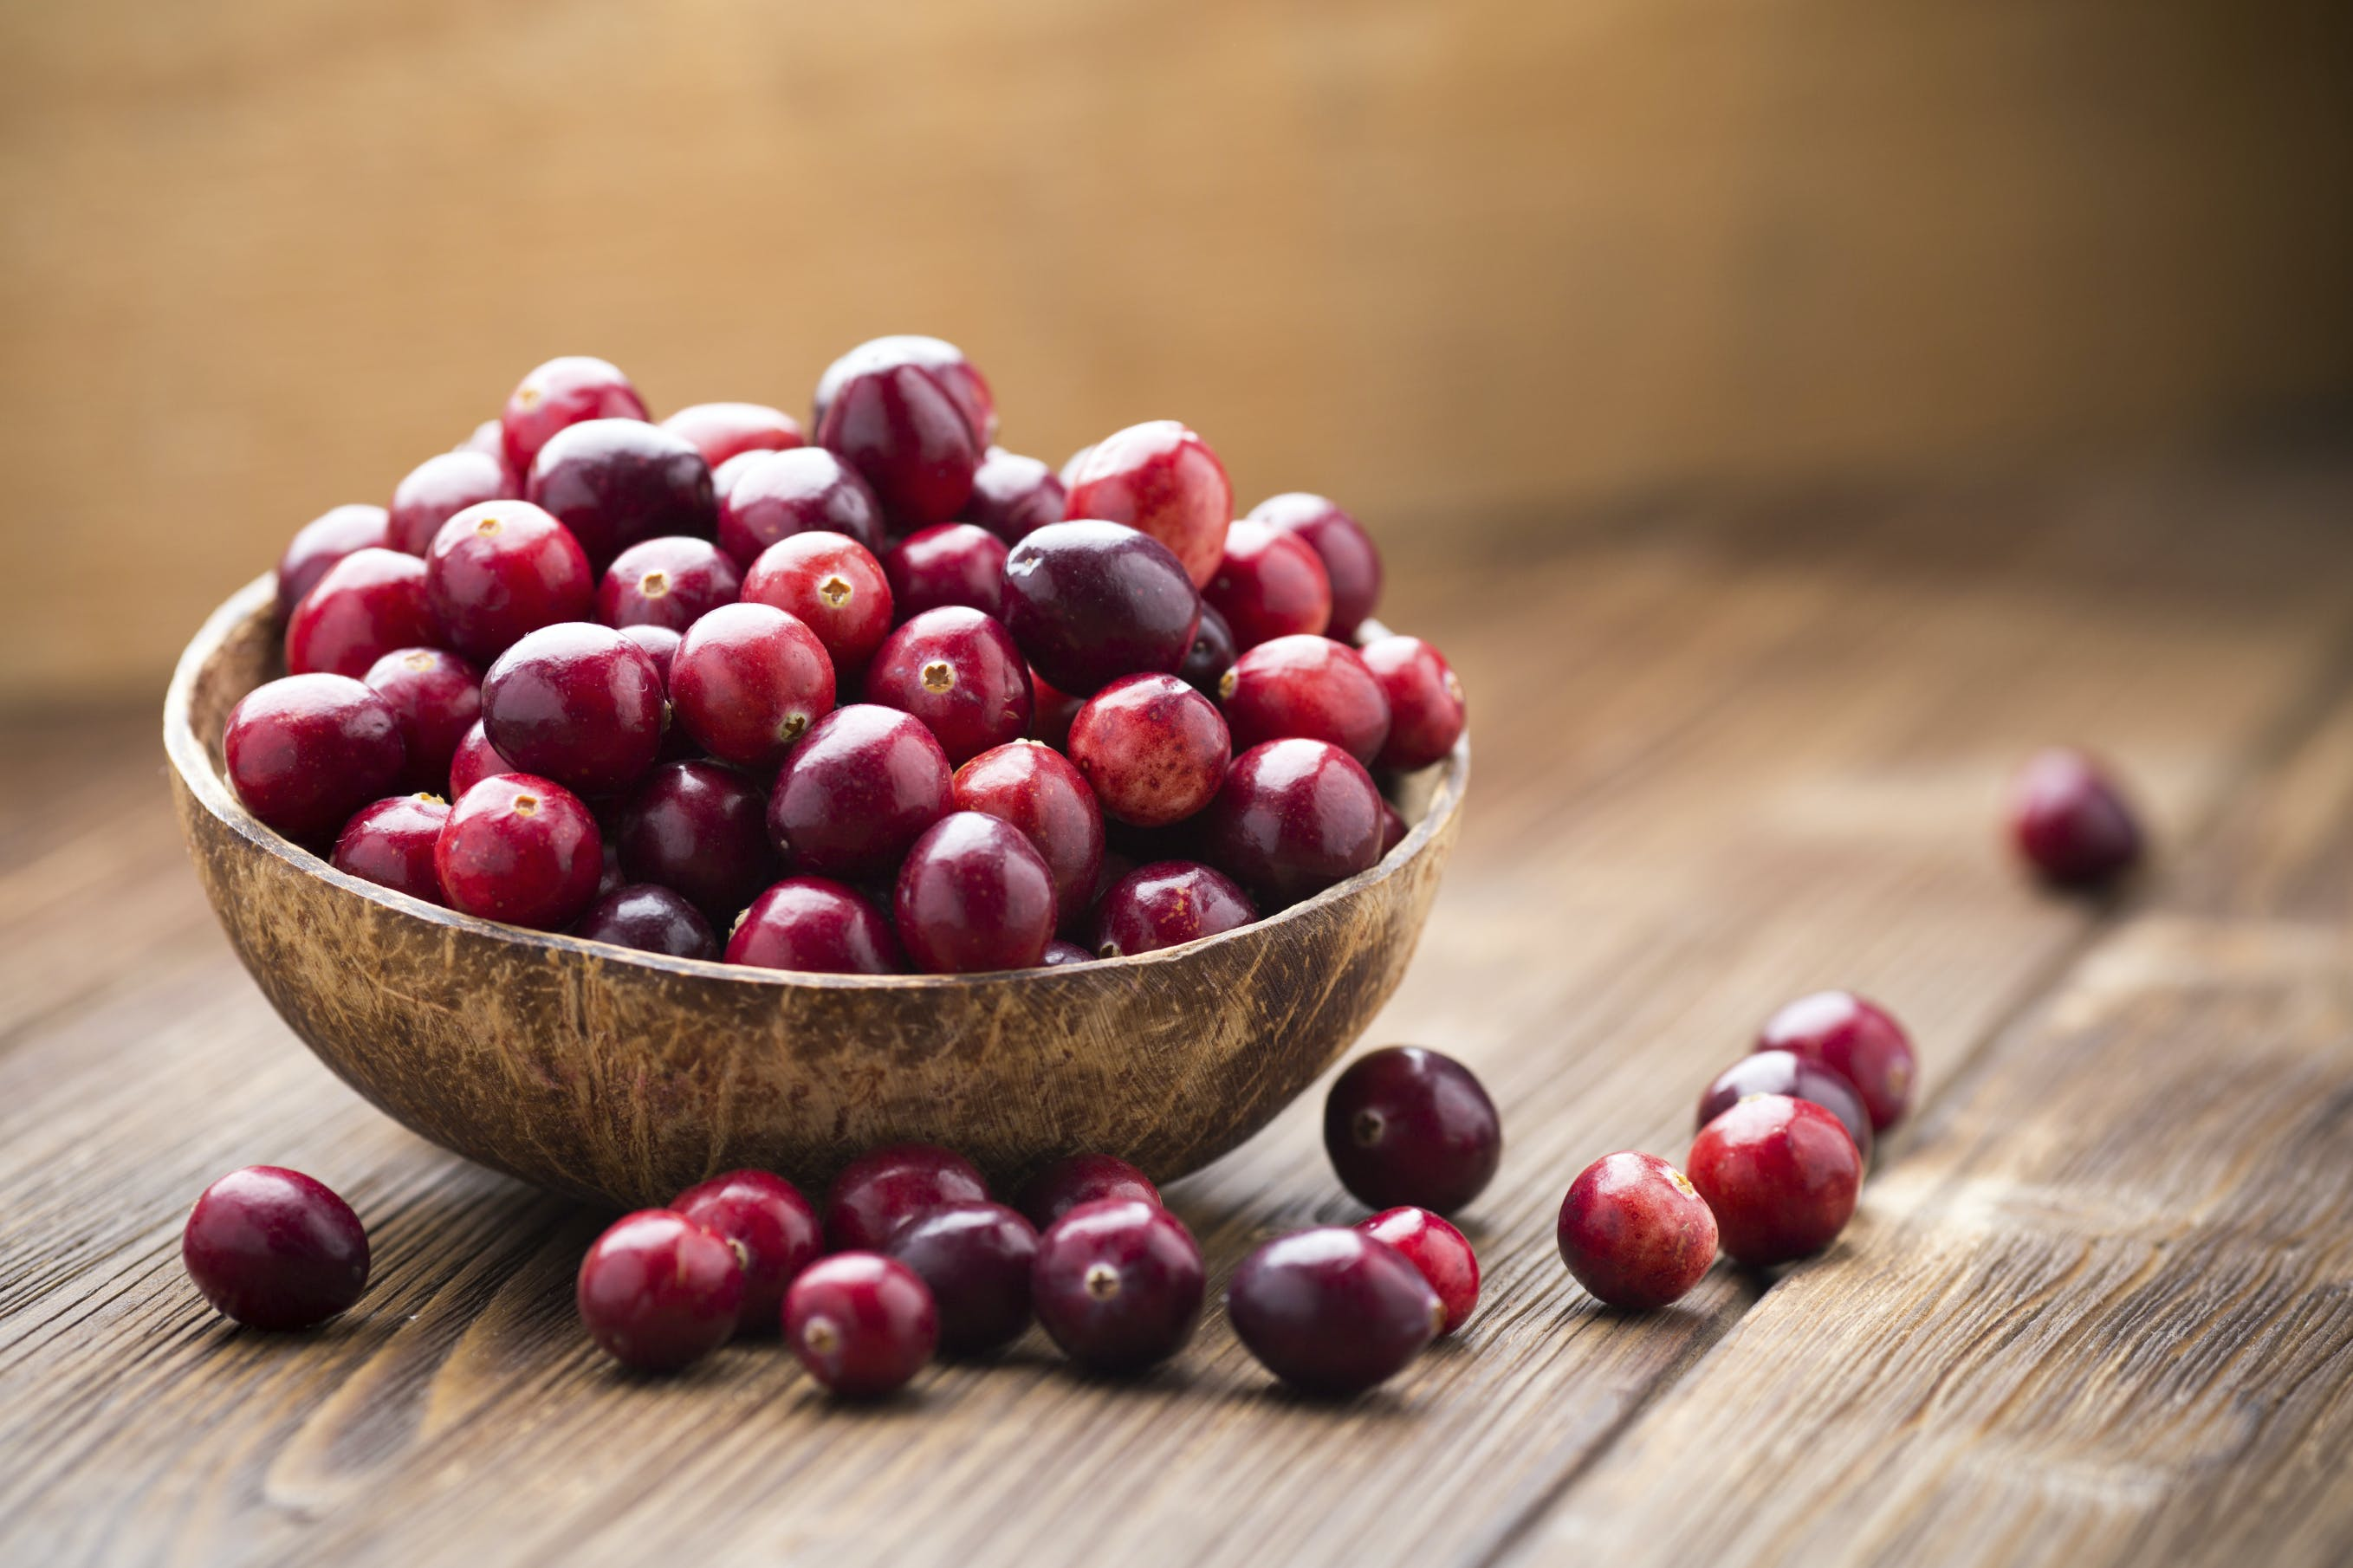 Why You Should Add Cranberries to Your Diet